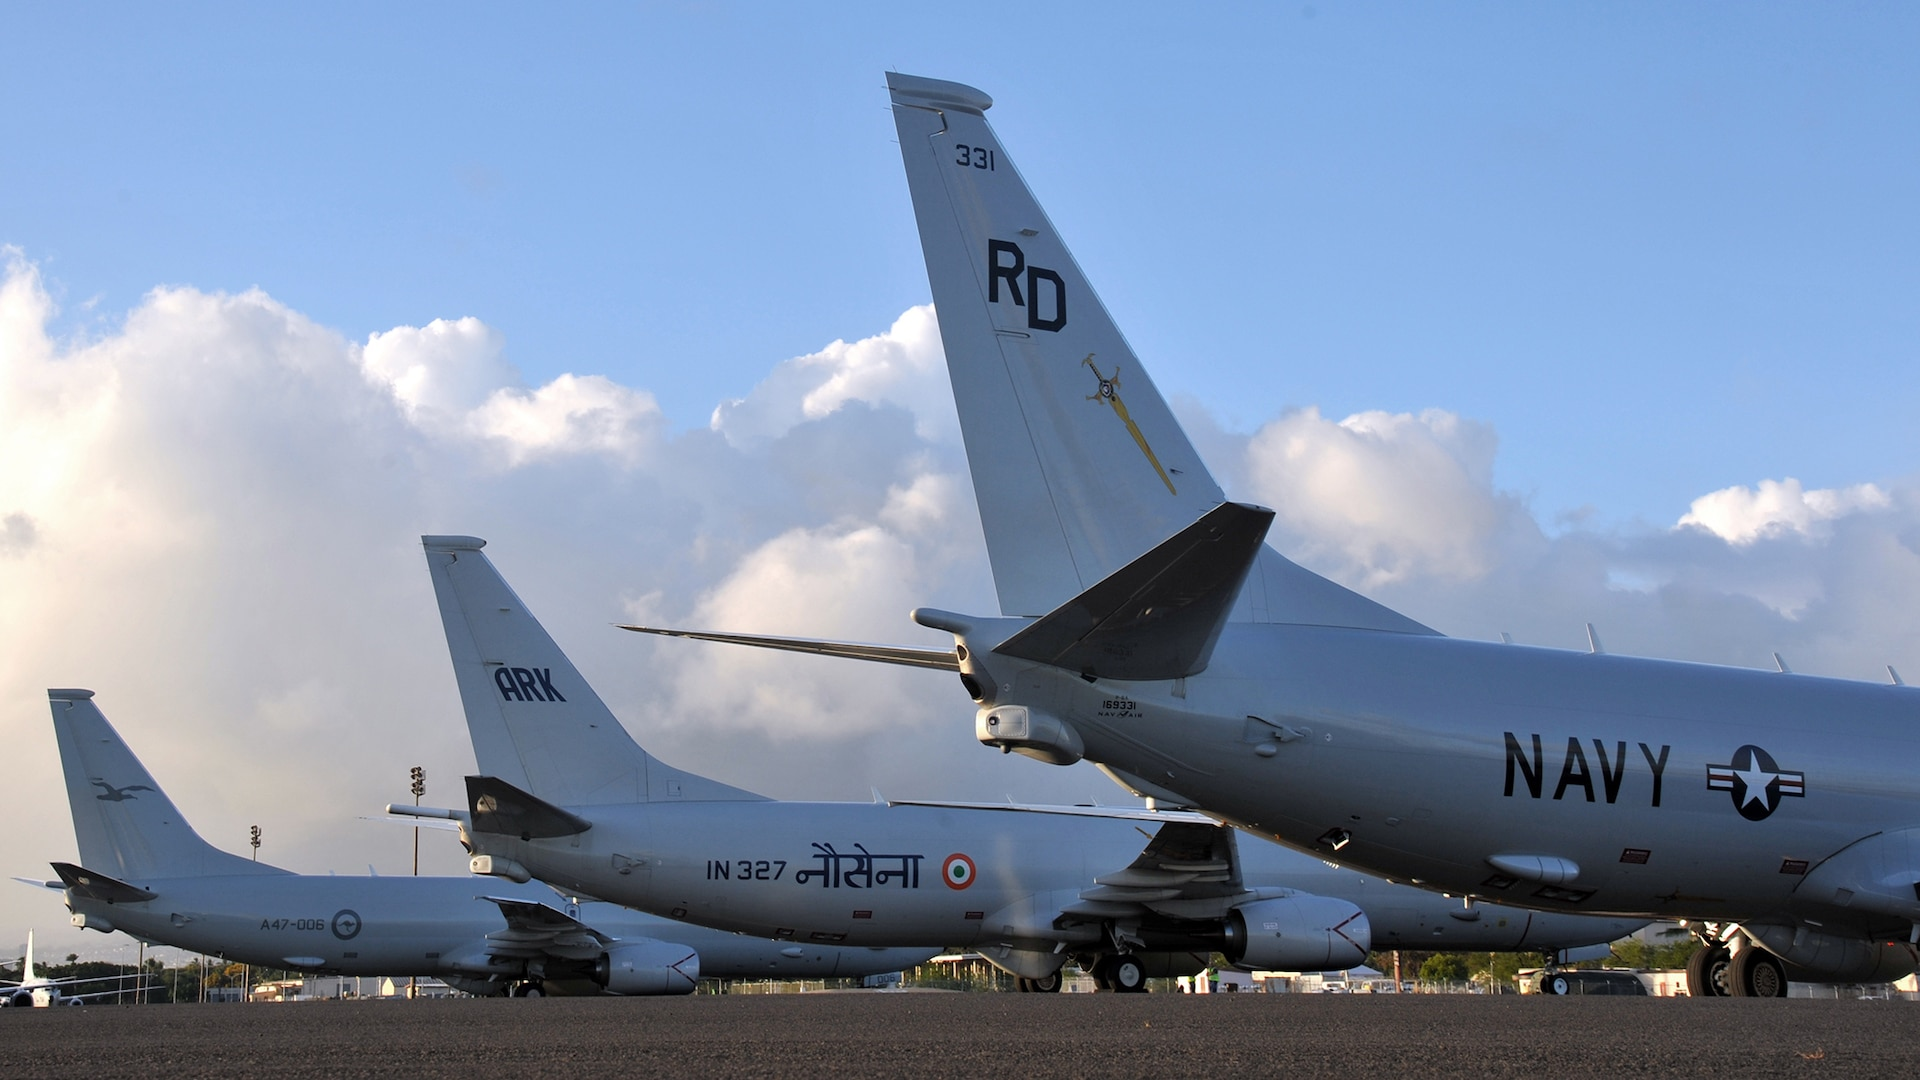 U.S. Navy, Indian Navy, and Royal Australian Air Force P-8 Poseidons staged at Joint Base Pearl Harbor-Hickam